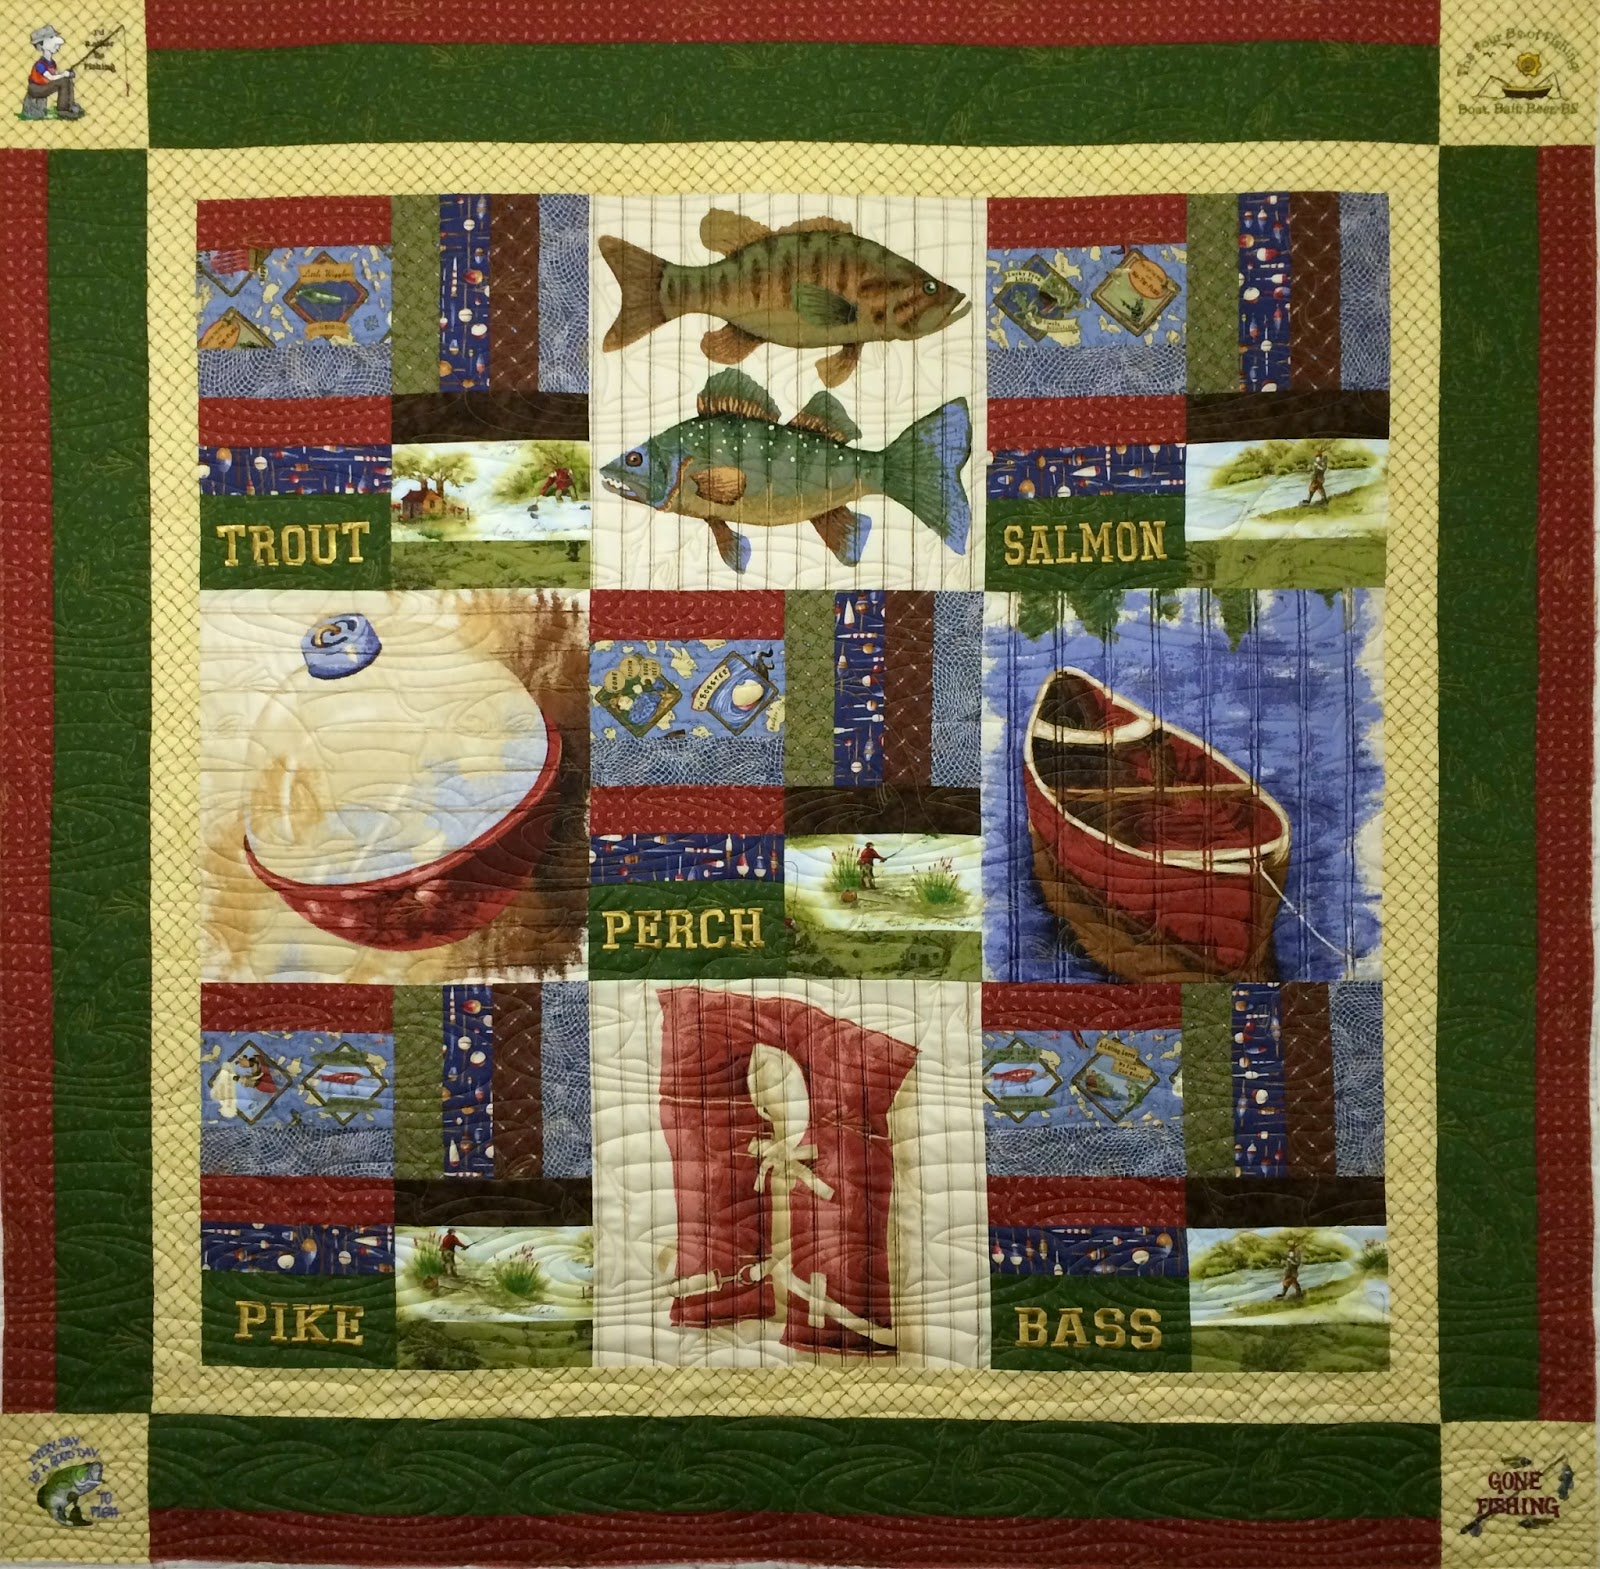 Leanne Strum's Fisherman's Quilt